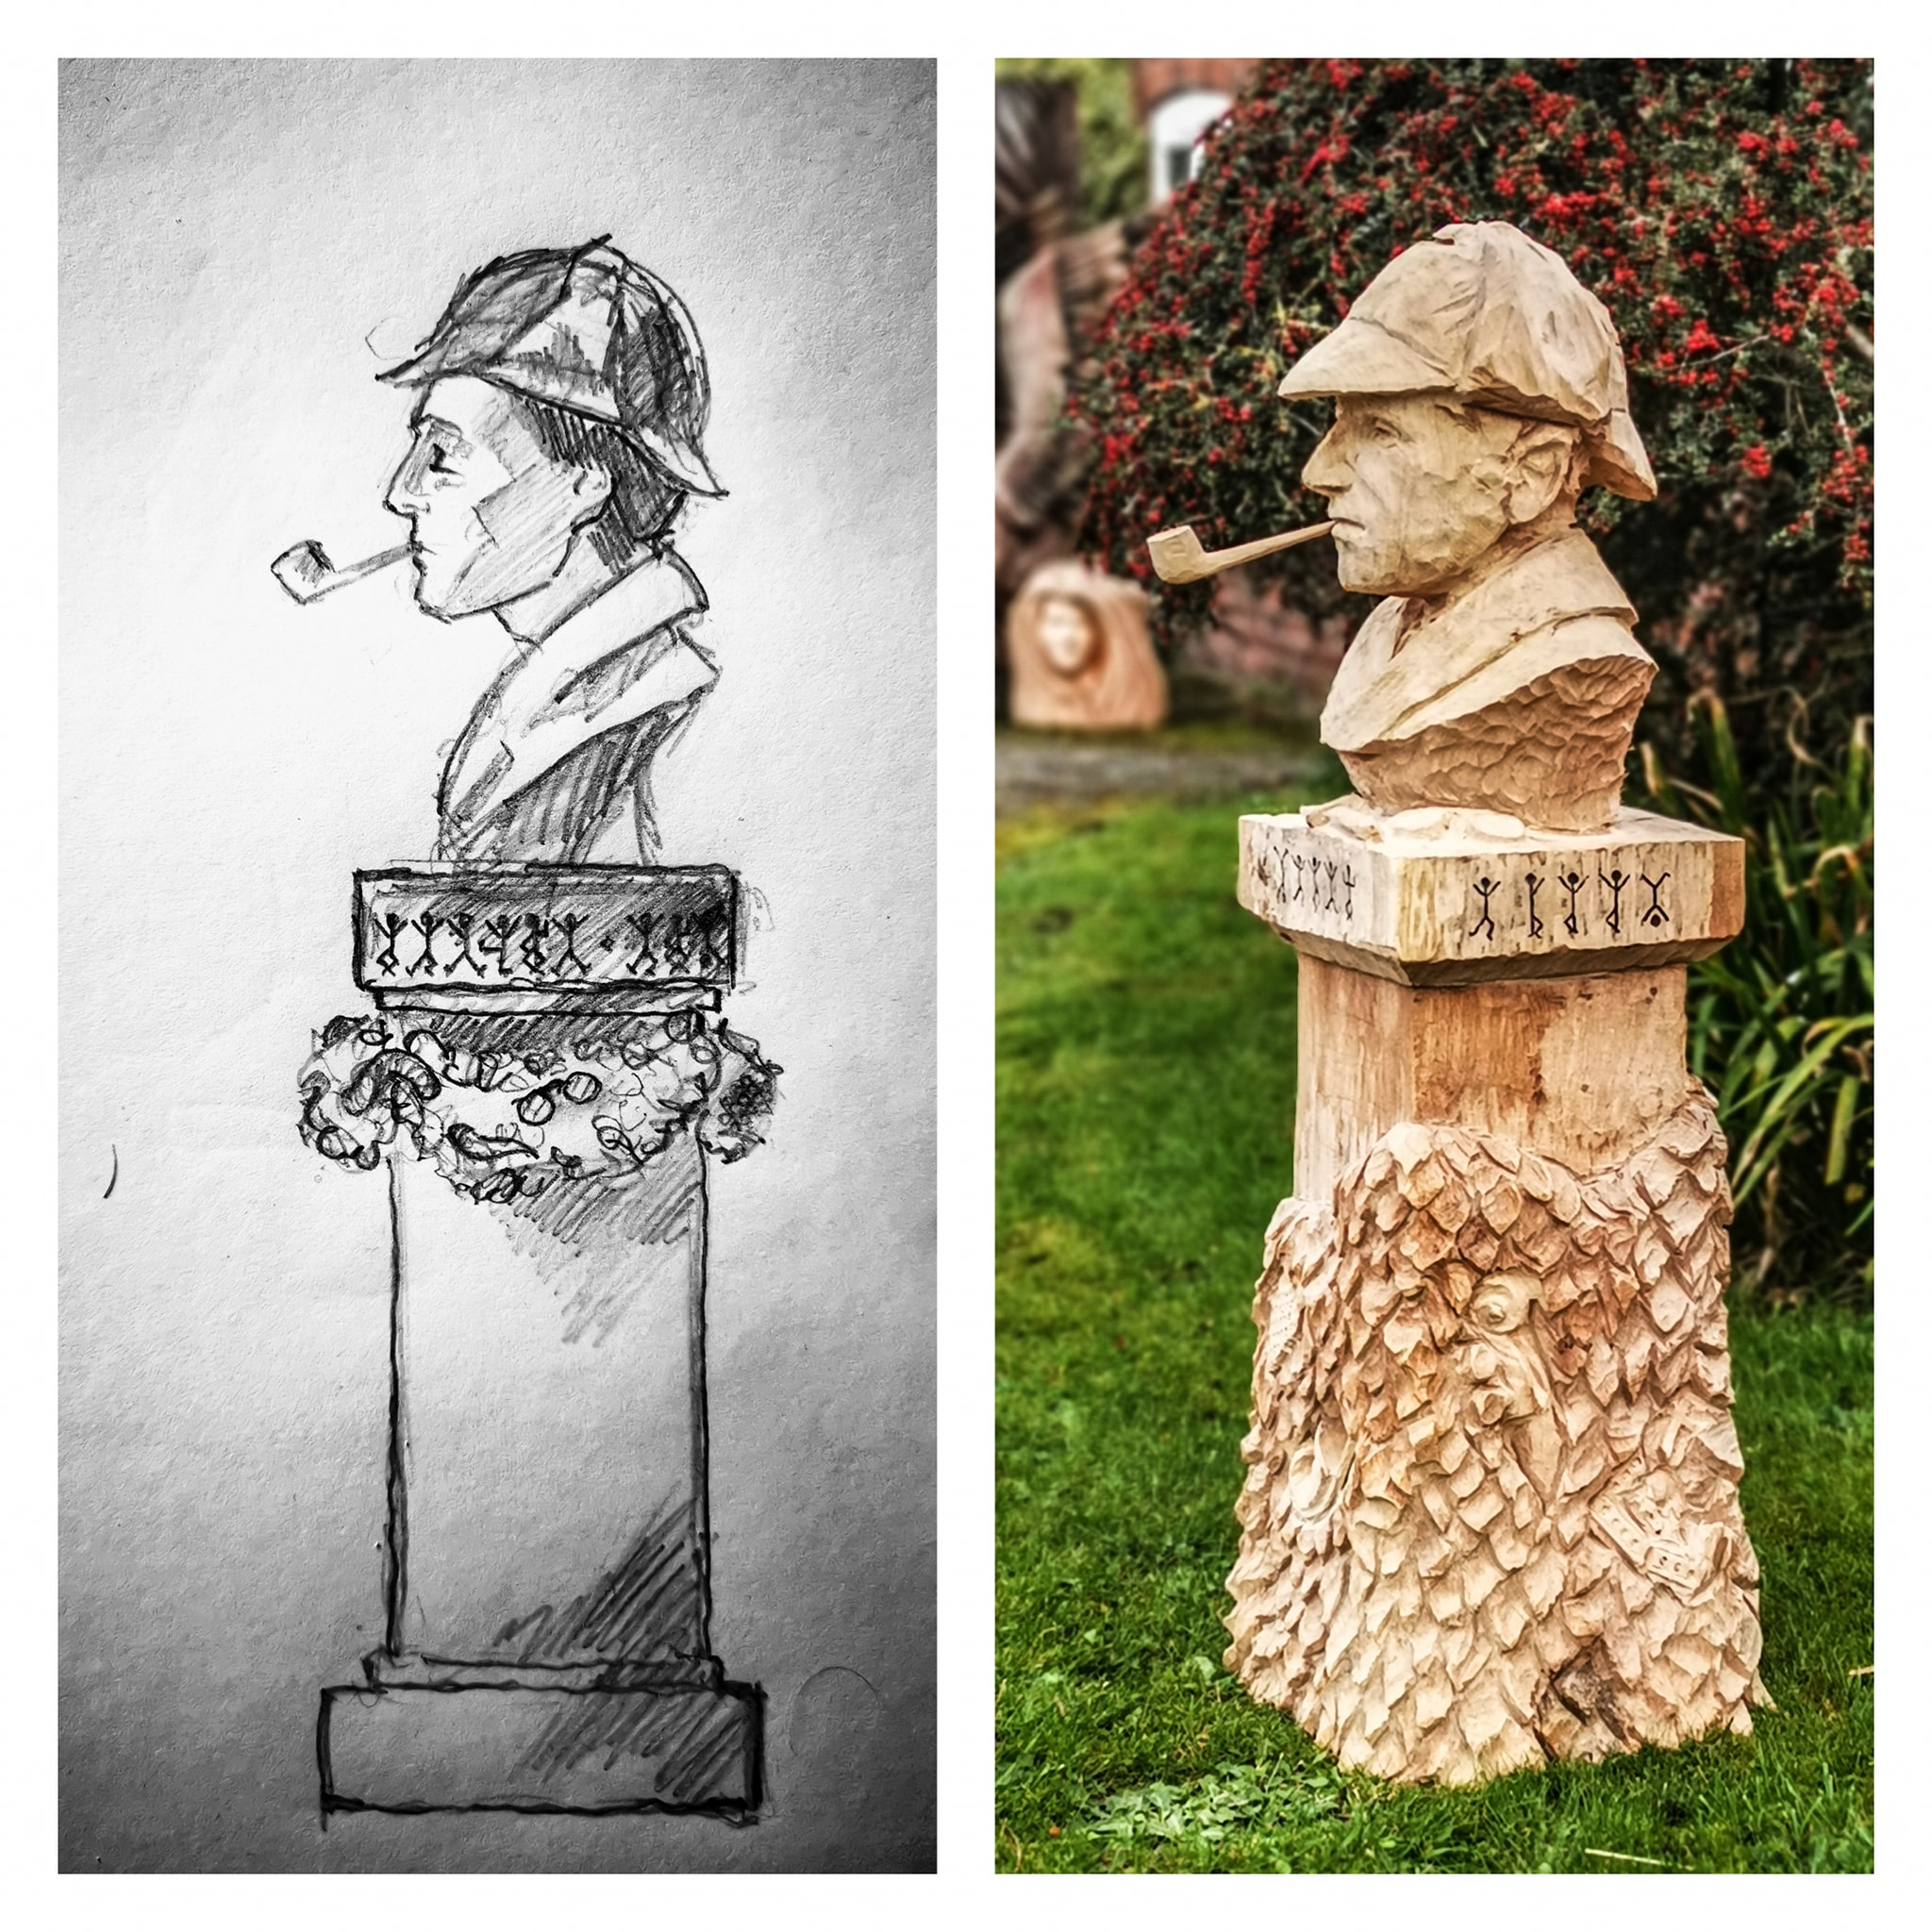 Photo shows a comparison of Simon O'Rourke's original sketch for a wooden Sherlock Holmes bust and the finished sculpture.